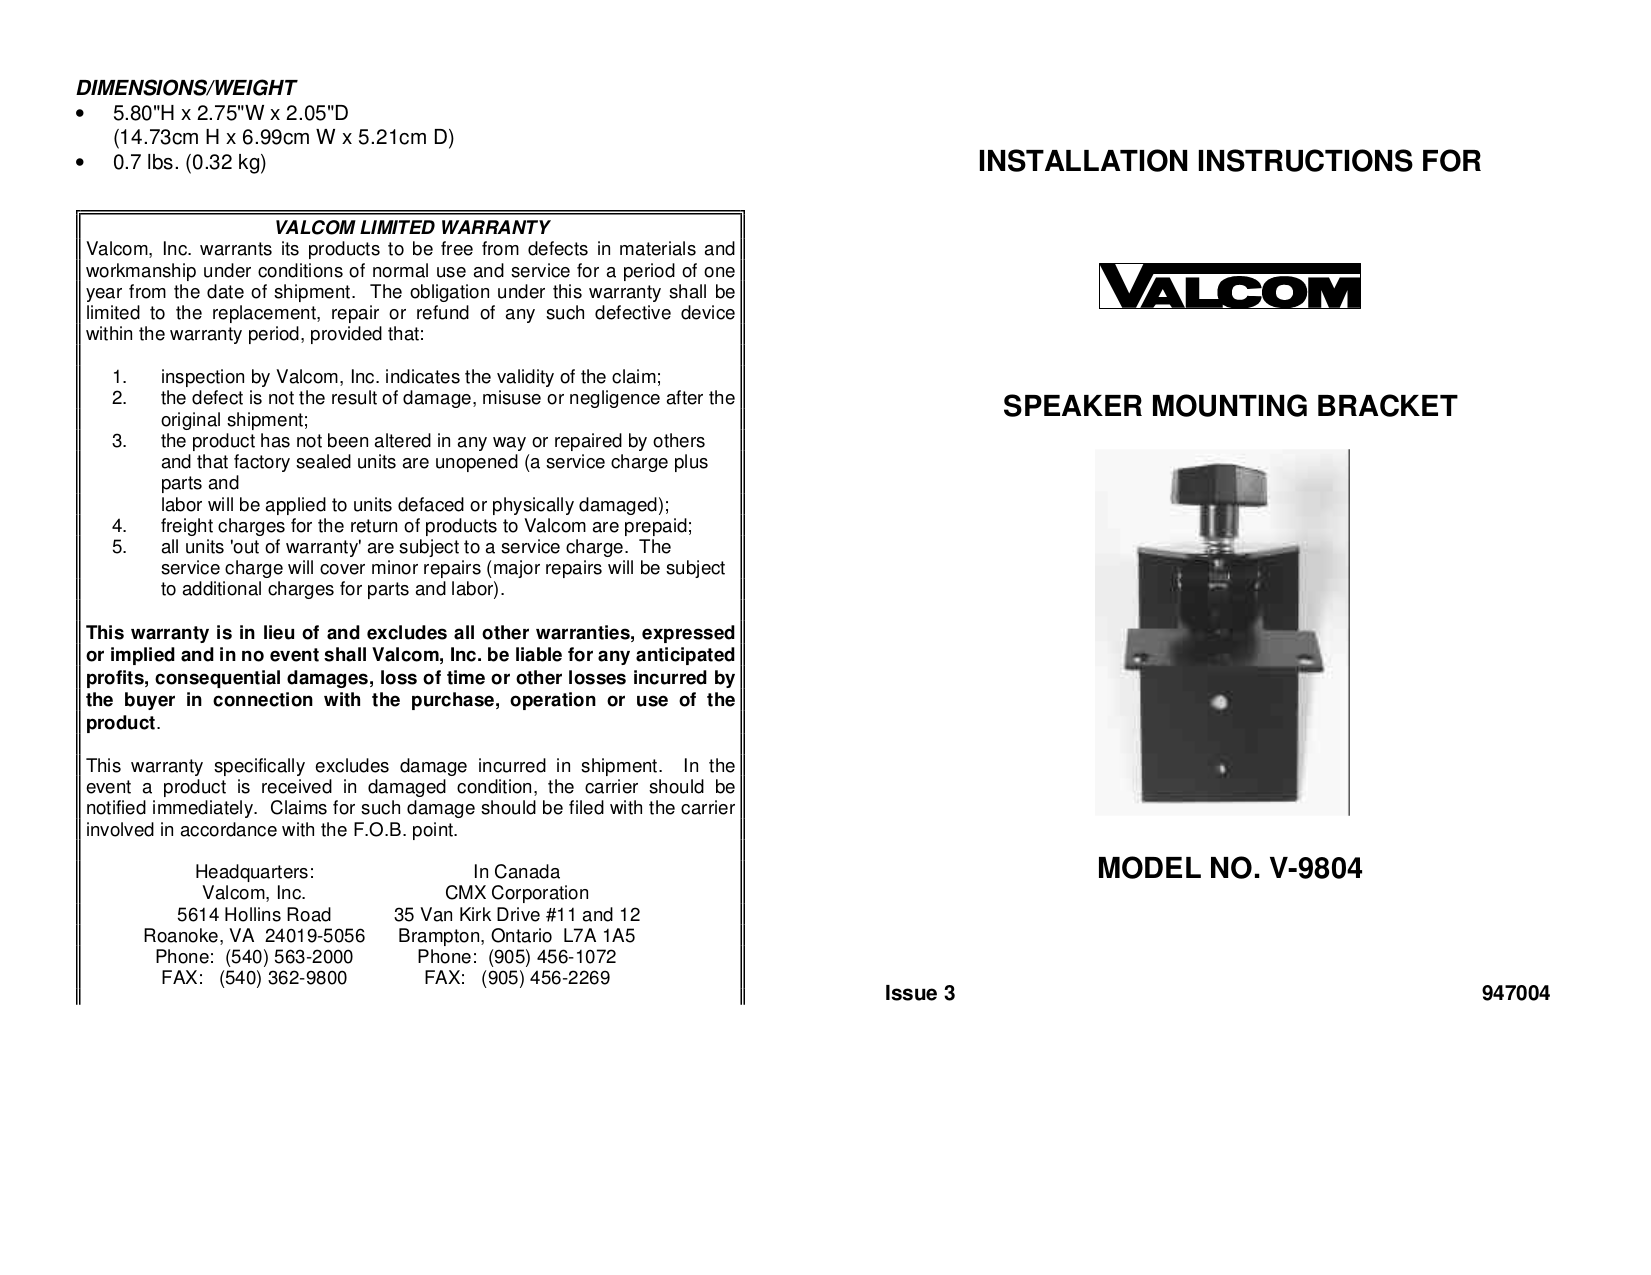 V 9804.pdf 0 download free pdf for valcom v1080 speaker manual  at bayanpartner.co